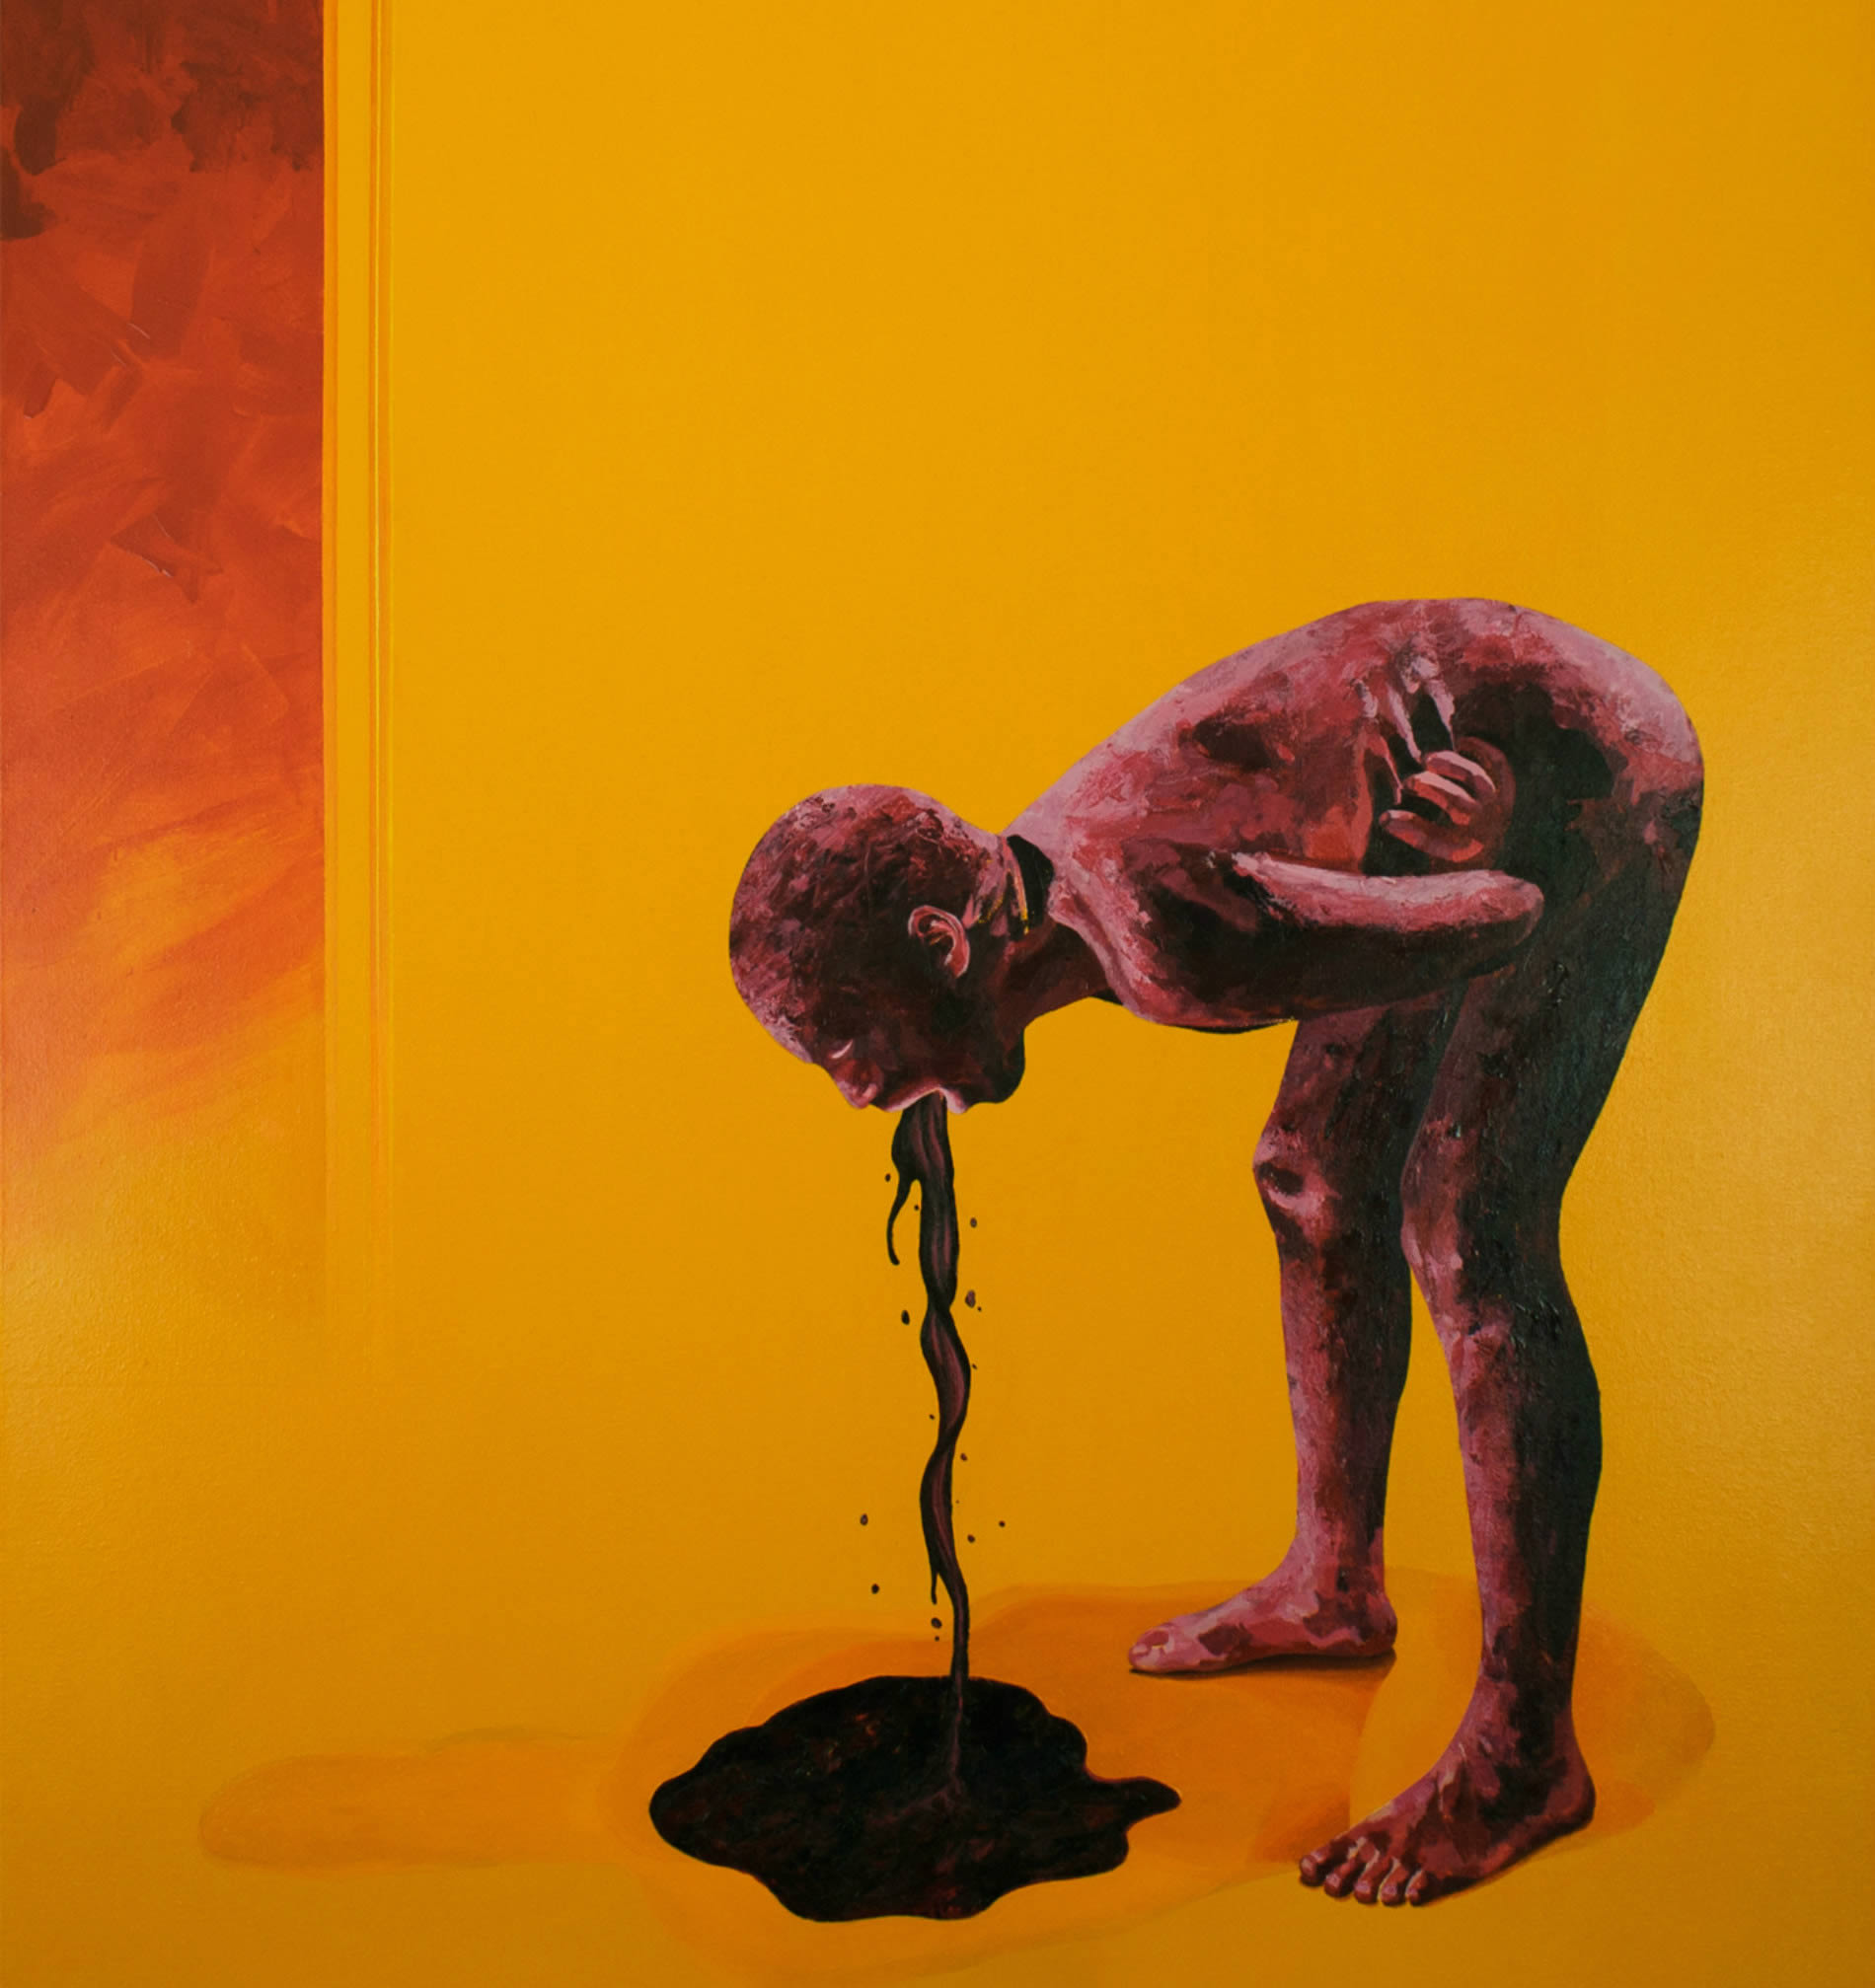 man vomittin,painting by oscar delmar, yellow room